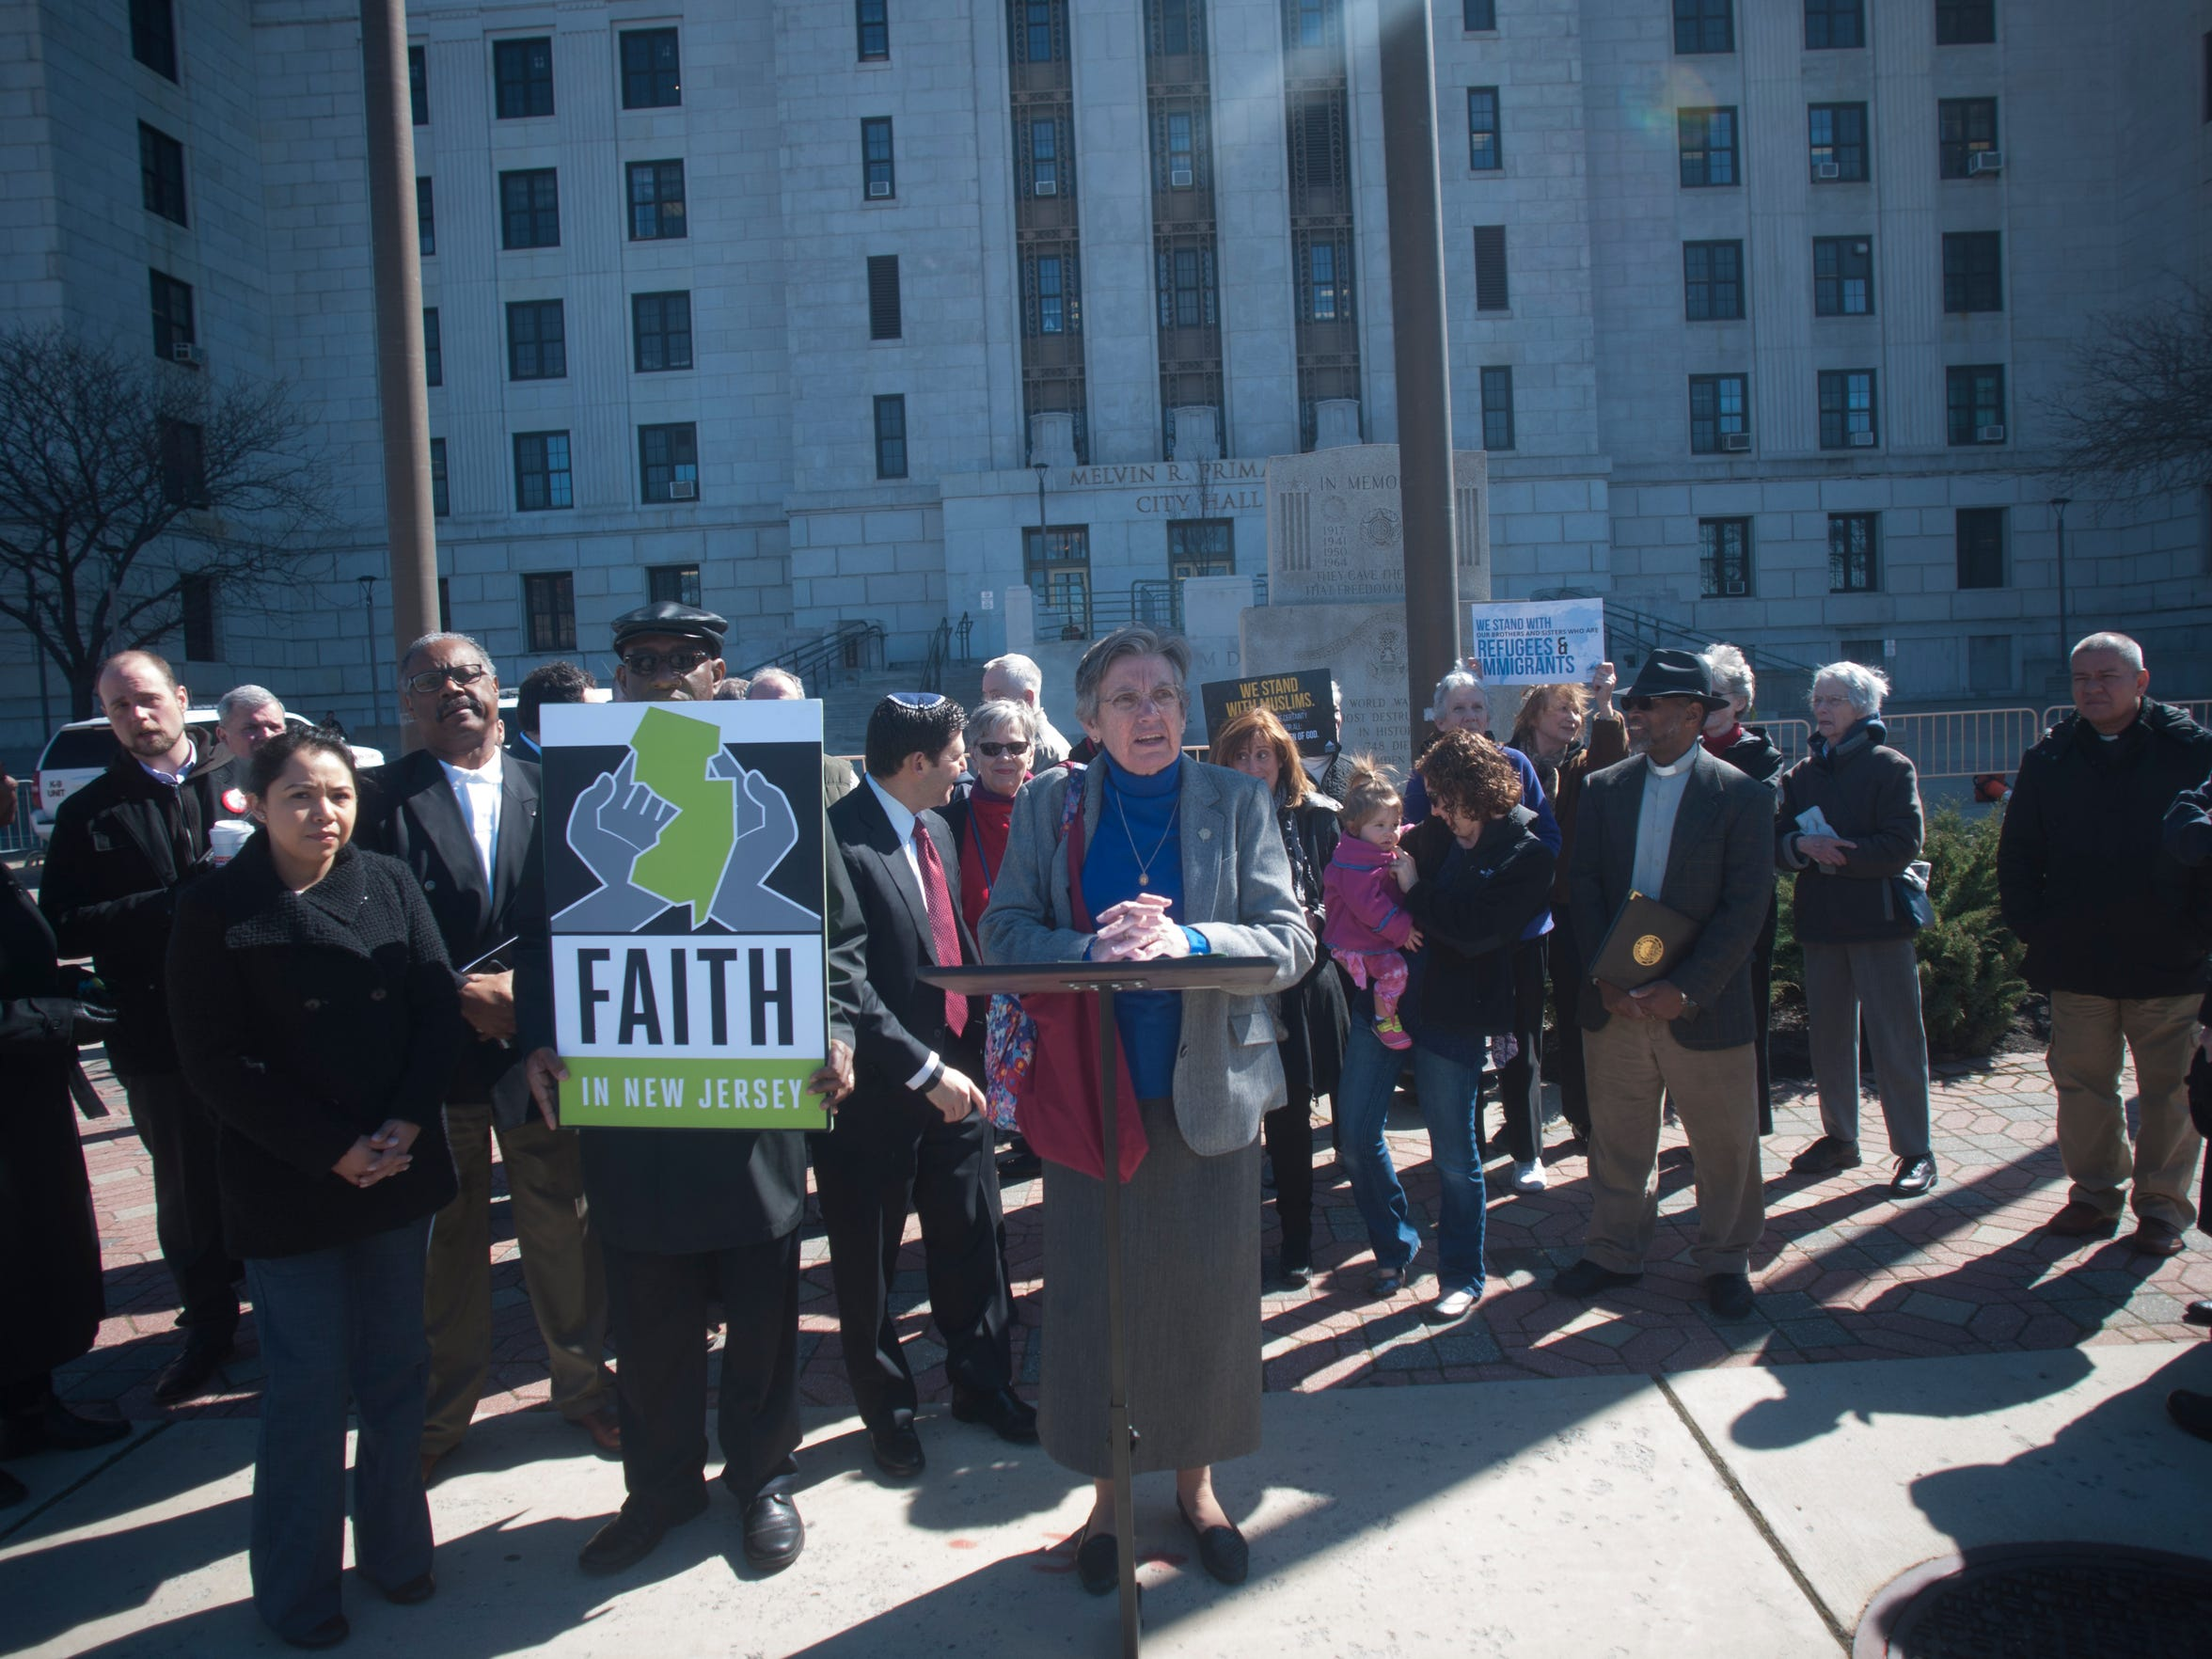 Sister Veronica Roche, speaks during an rally on undocumented